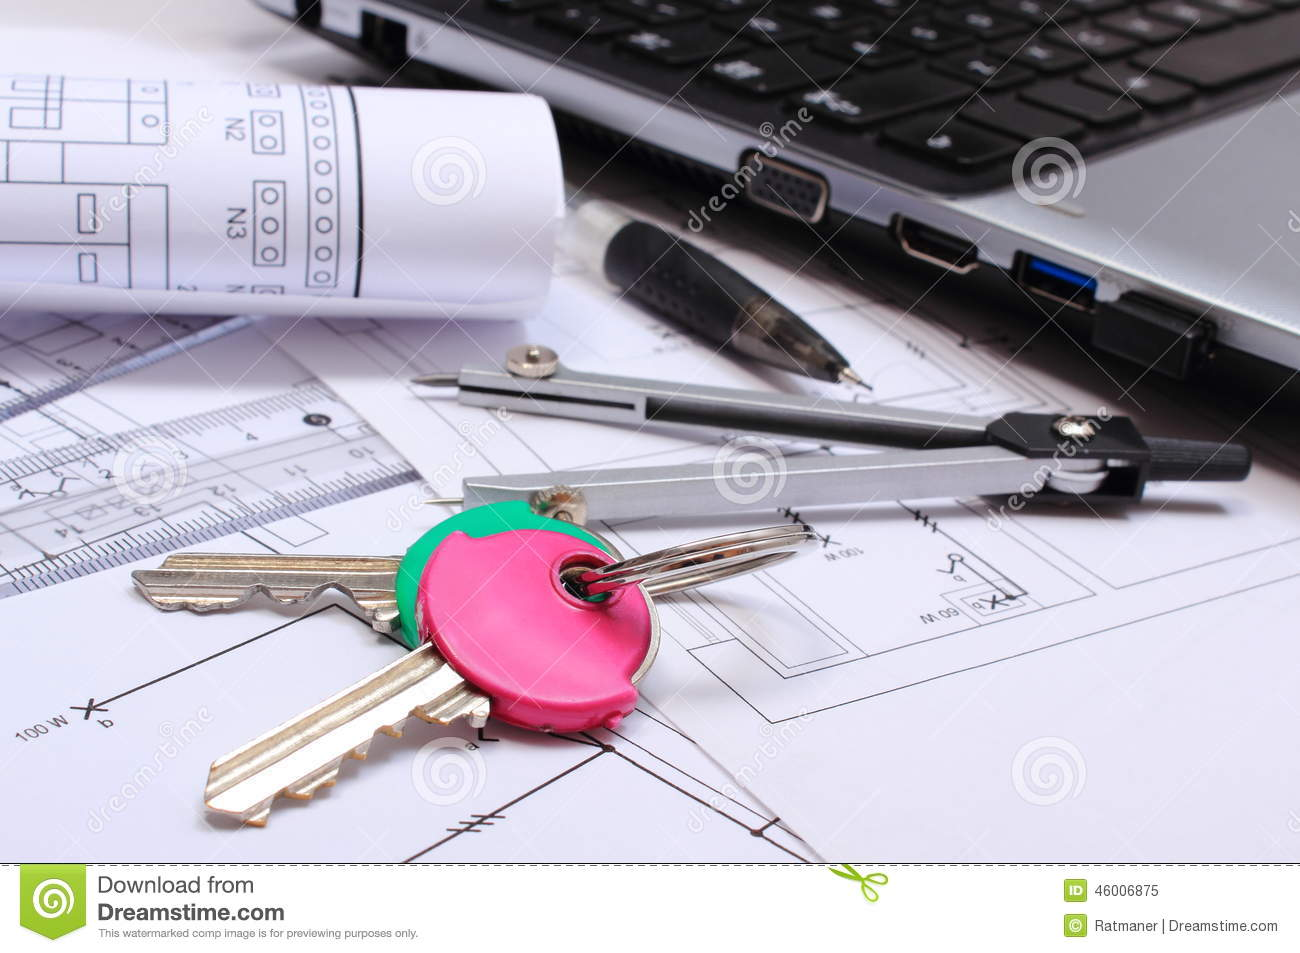 hight resolution of electrical diagrams accessories for drawing home keys and laptop